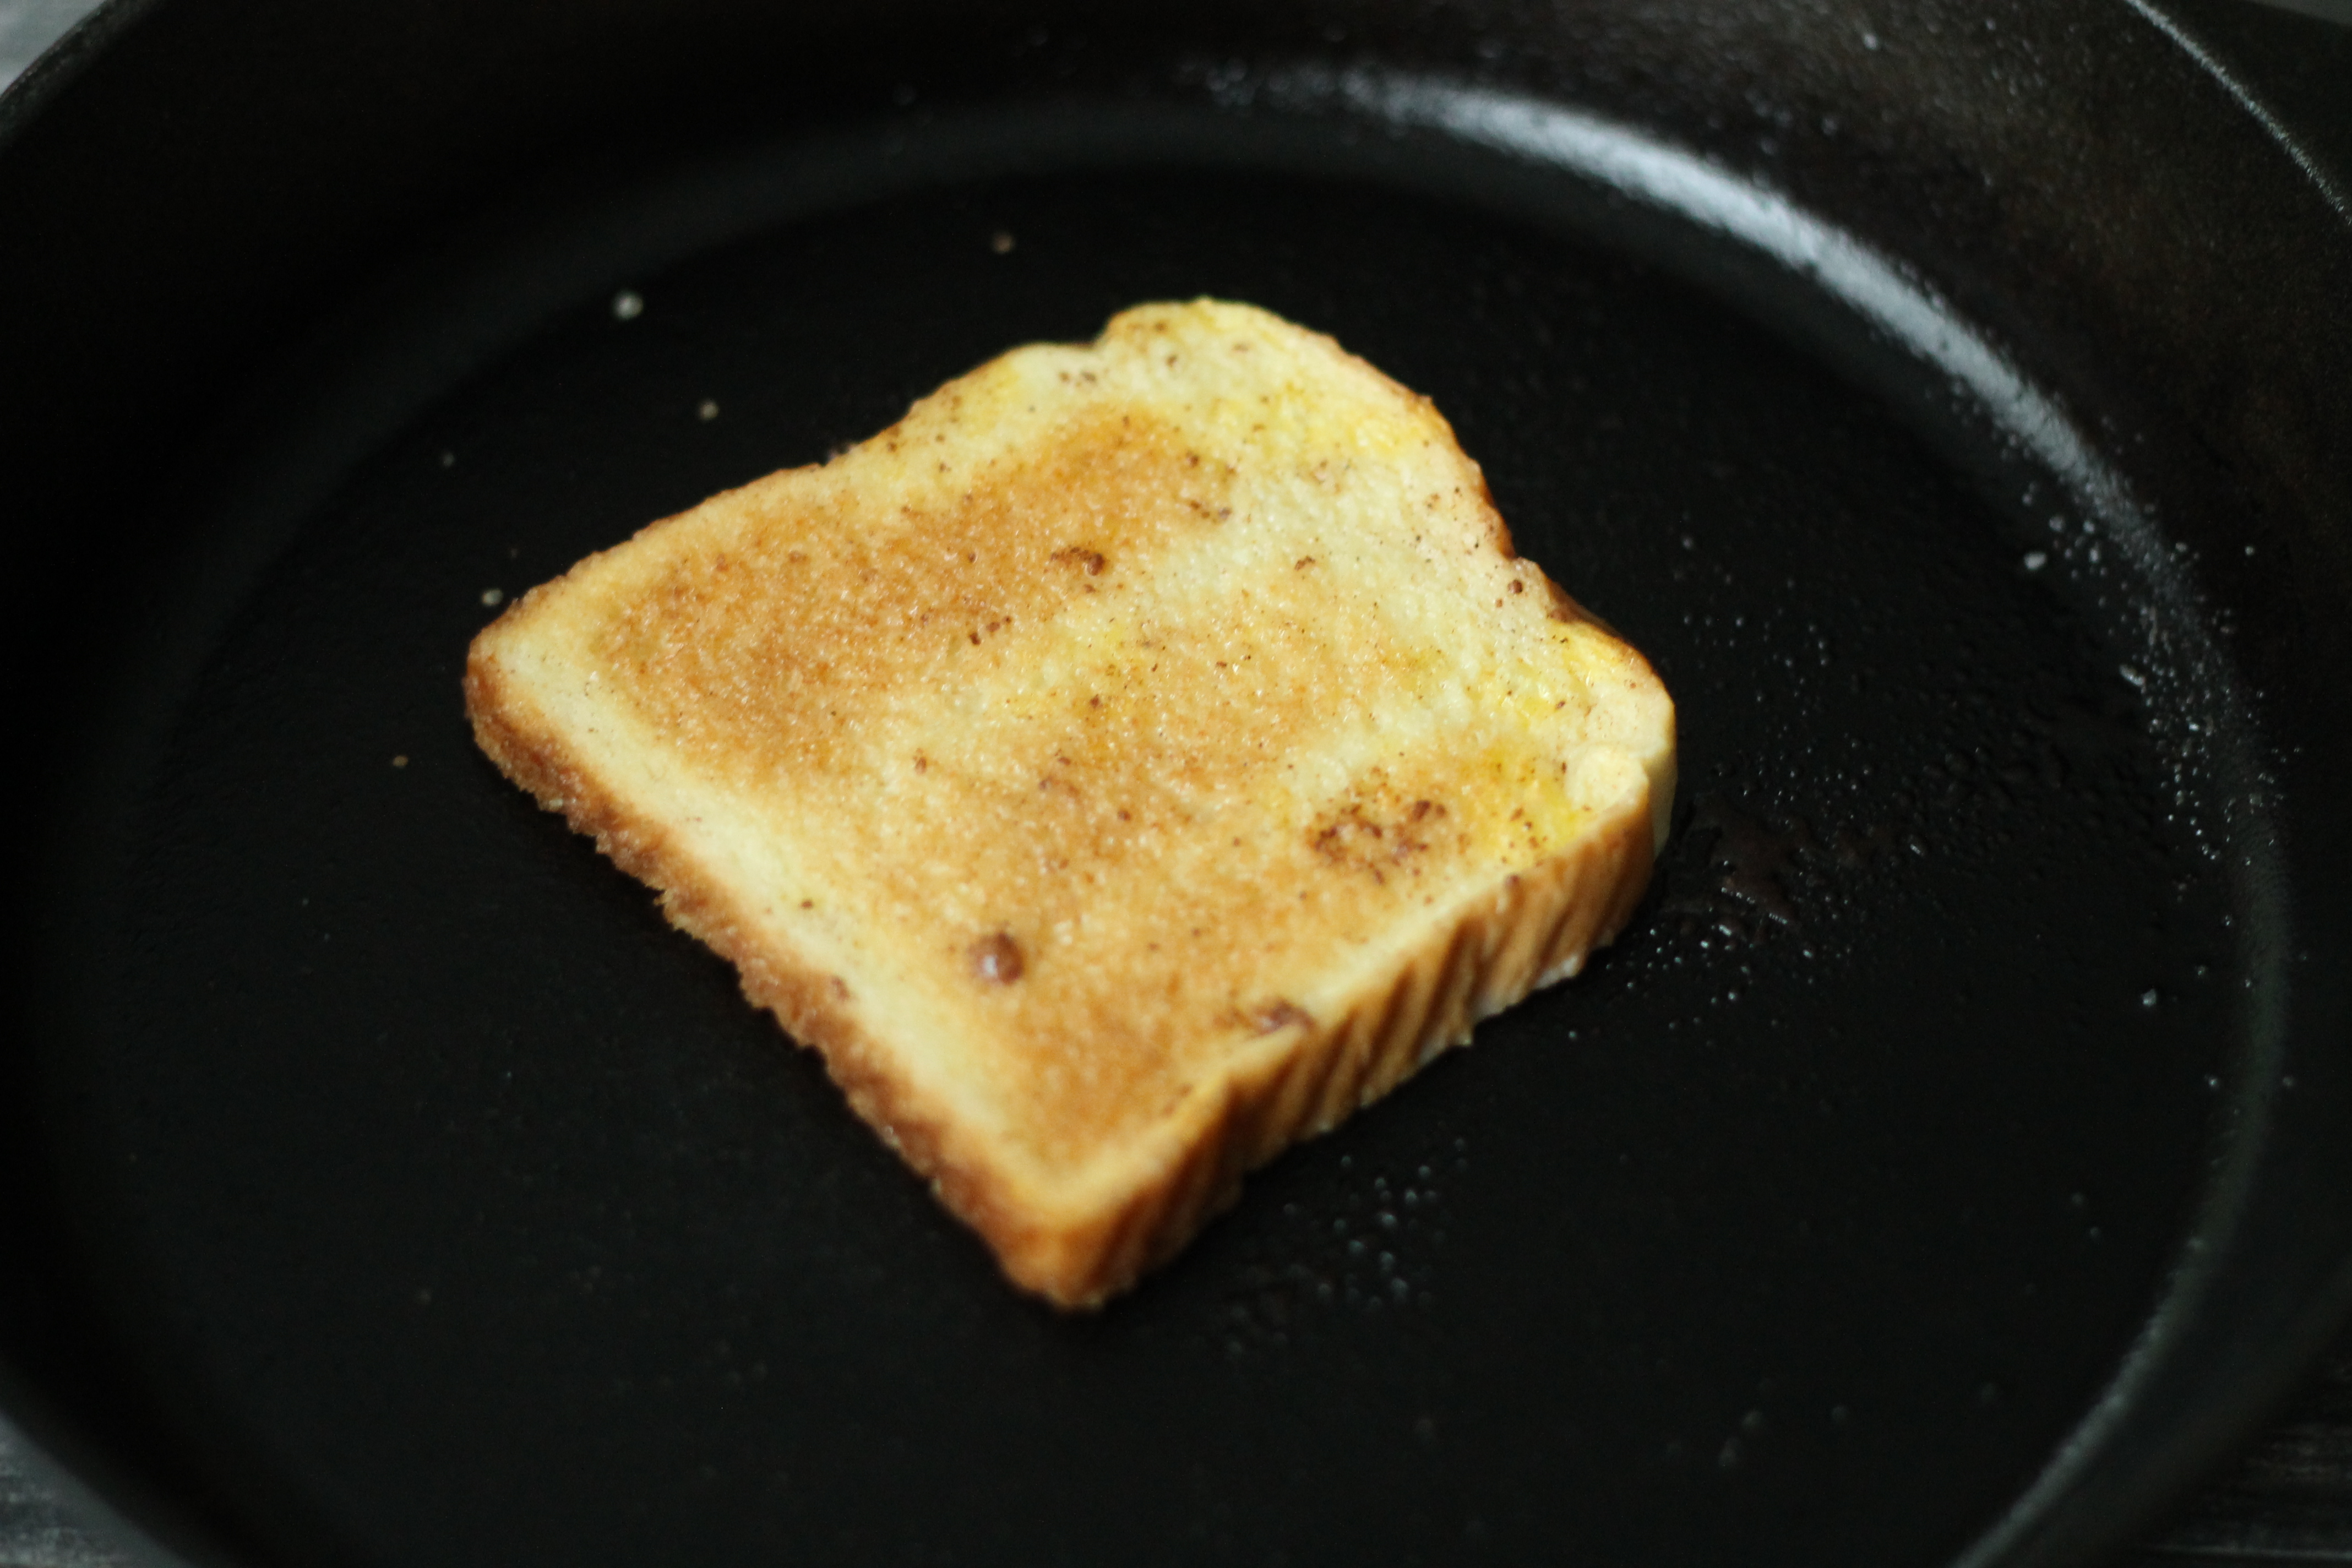 Double Toasted French Toast | Slyh in the Kitchen